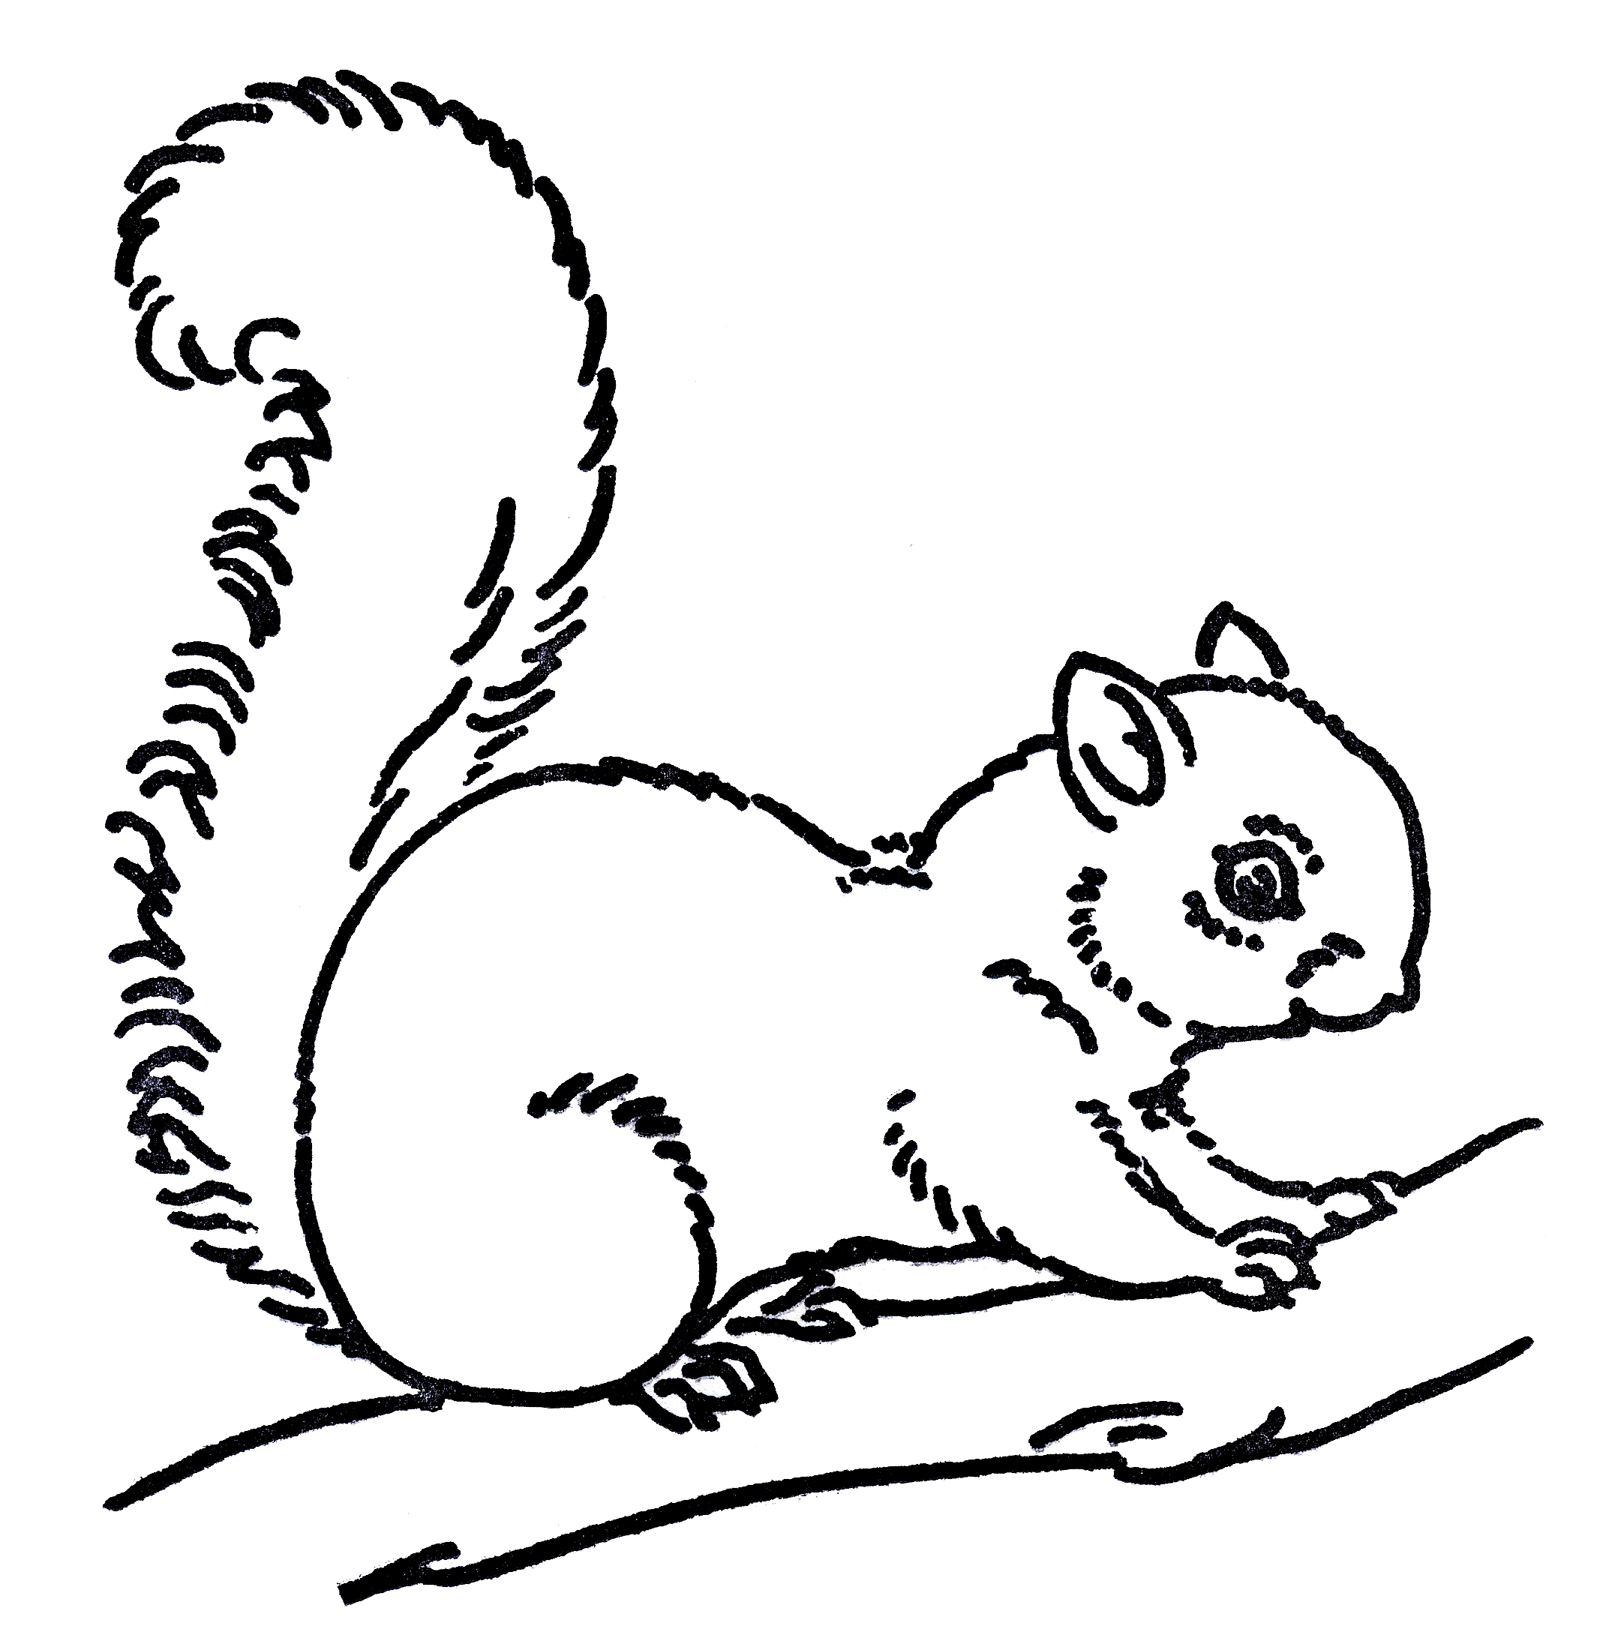 Zzve Line Art : Free line art images squirrel drawings the graphics fairy